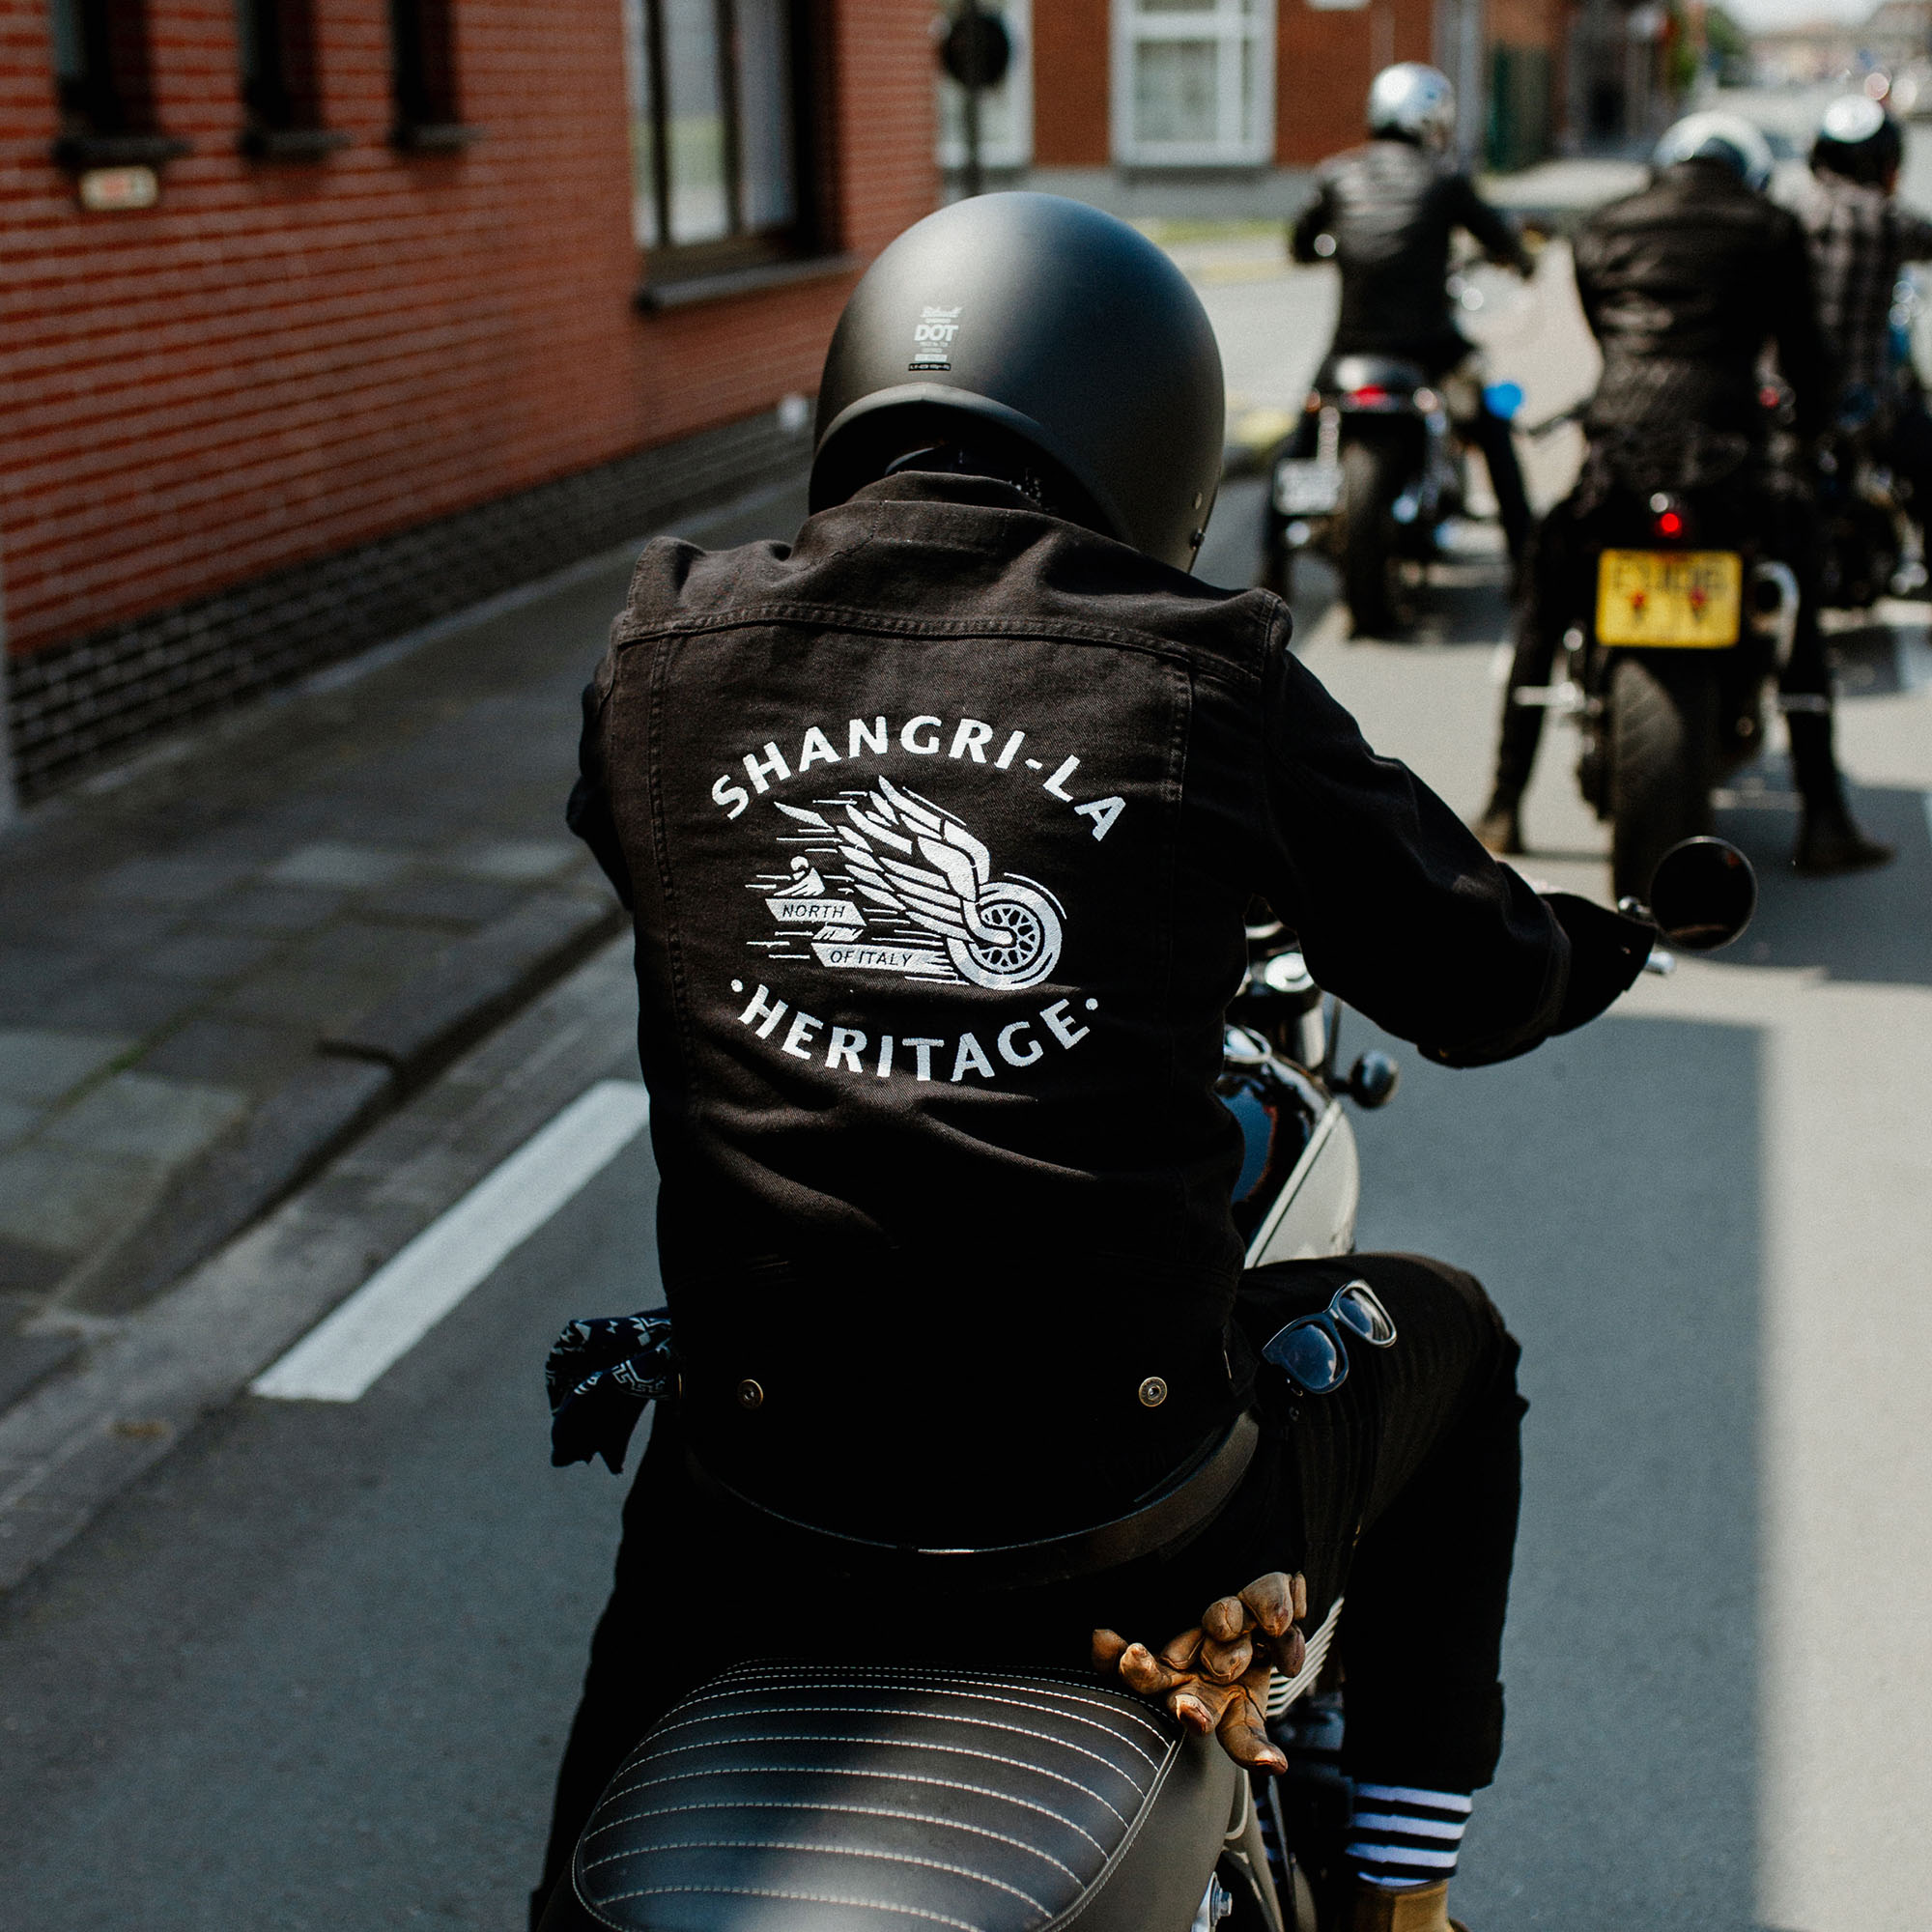 shangri-la-heritage-new-single-rider-winged-wheel-black-canvas-jacket-lifestyle-3